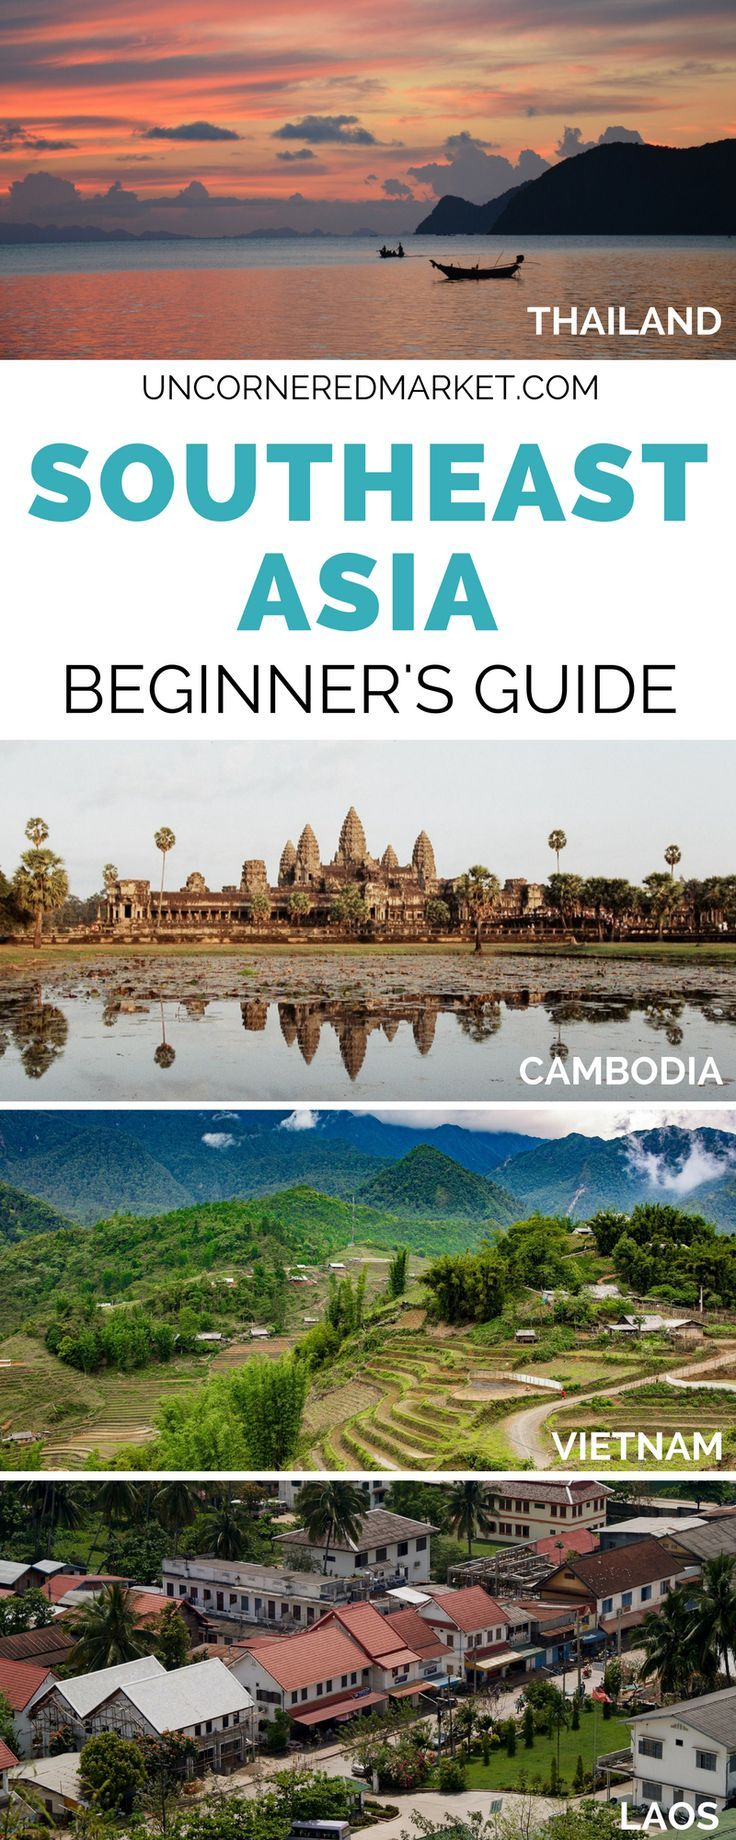 The complete travel guide to Southeast Asia. Top cities and places to visit in Thailand, Cambodia, Vietnam and Laos + tips on plotting your itinerary, deciding when to go, and booking your accommodation. | Uncornered Market Travel Blog